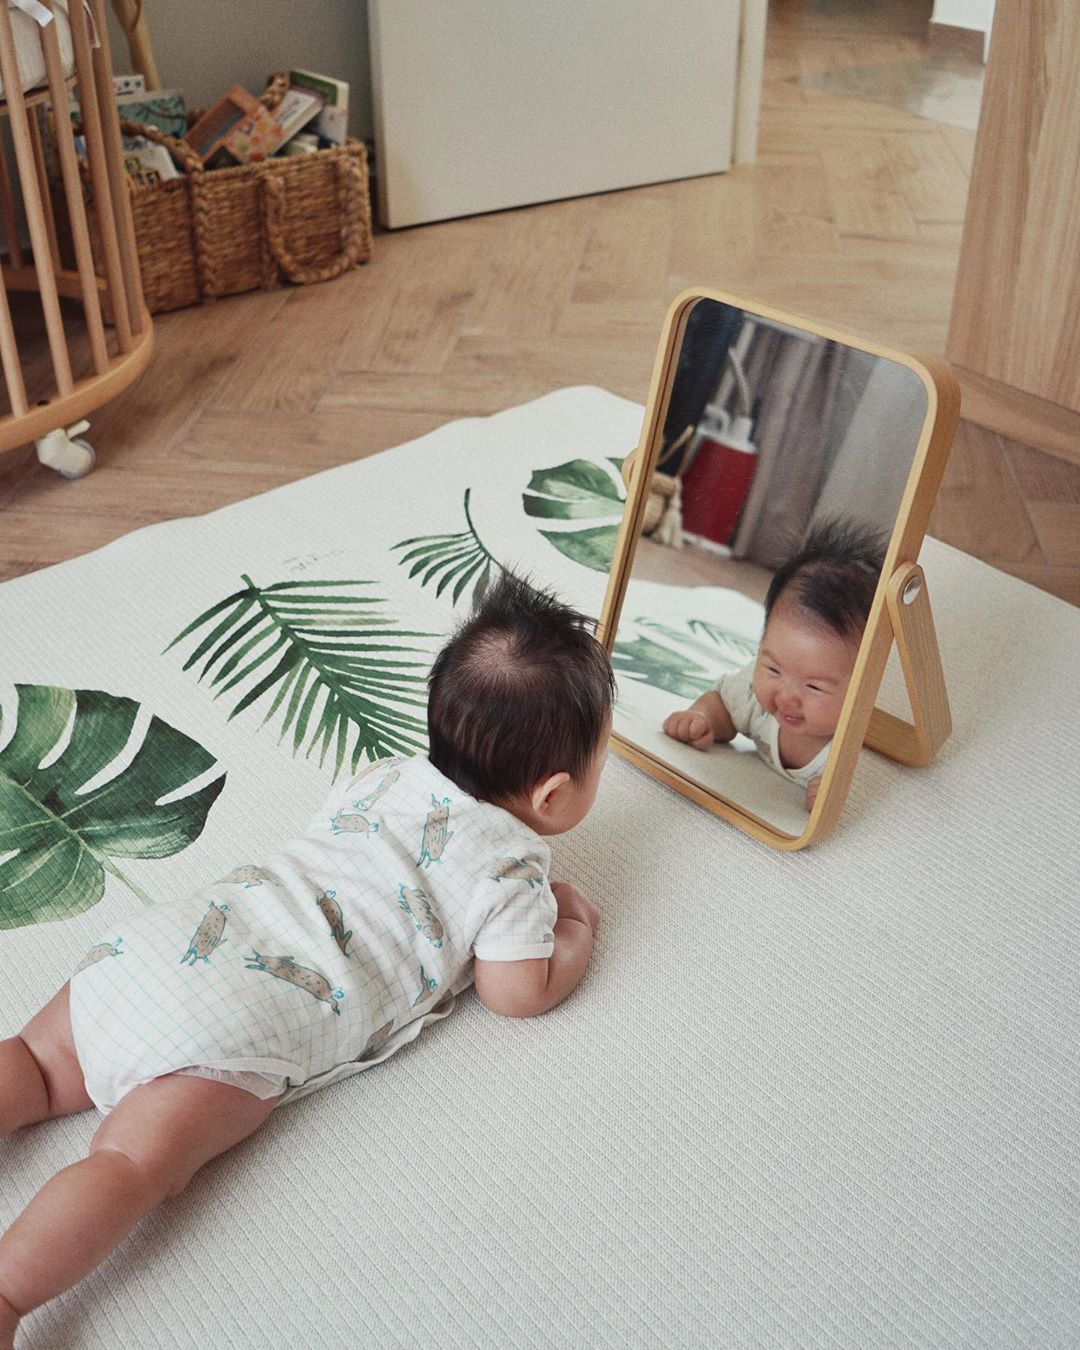 Sherlyn On Instagram Put A Mirror In Front Of Your Baby During Tummy Time To Motivate Her To Lift Her Head Here S The Tummy Time Animation Artwork Kids Rugs